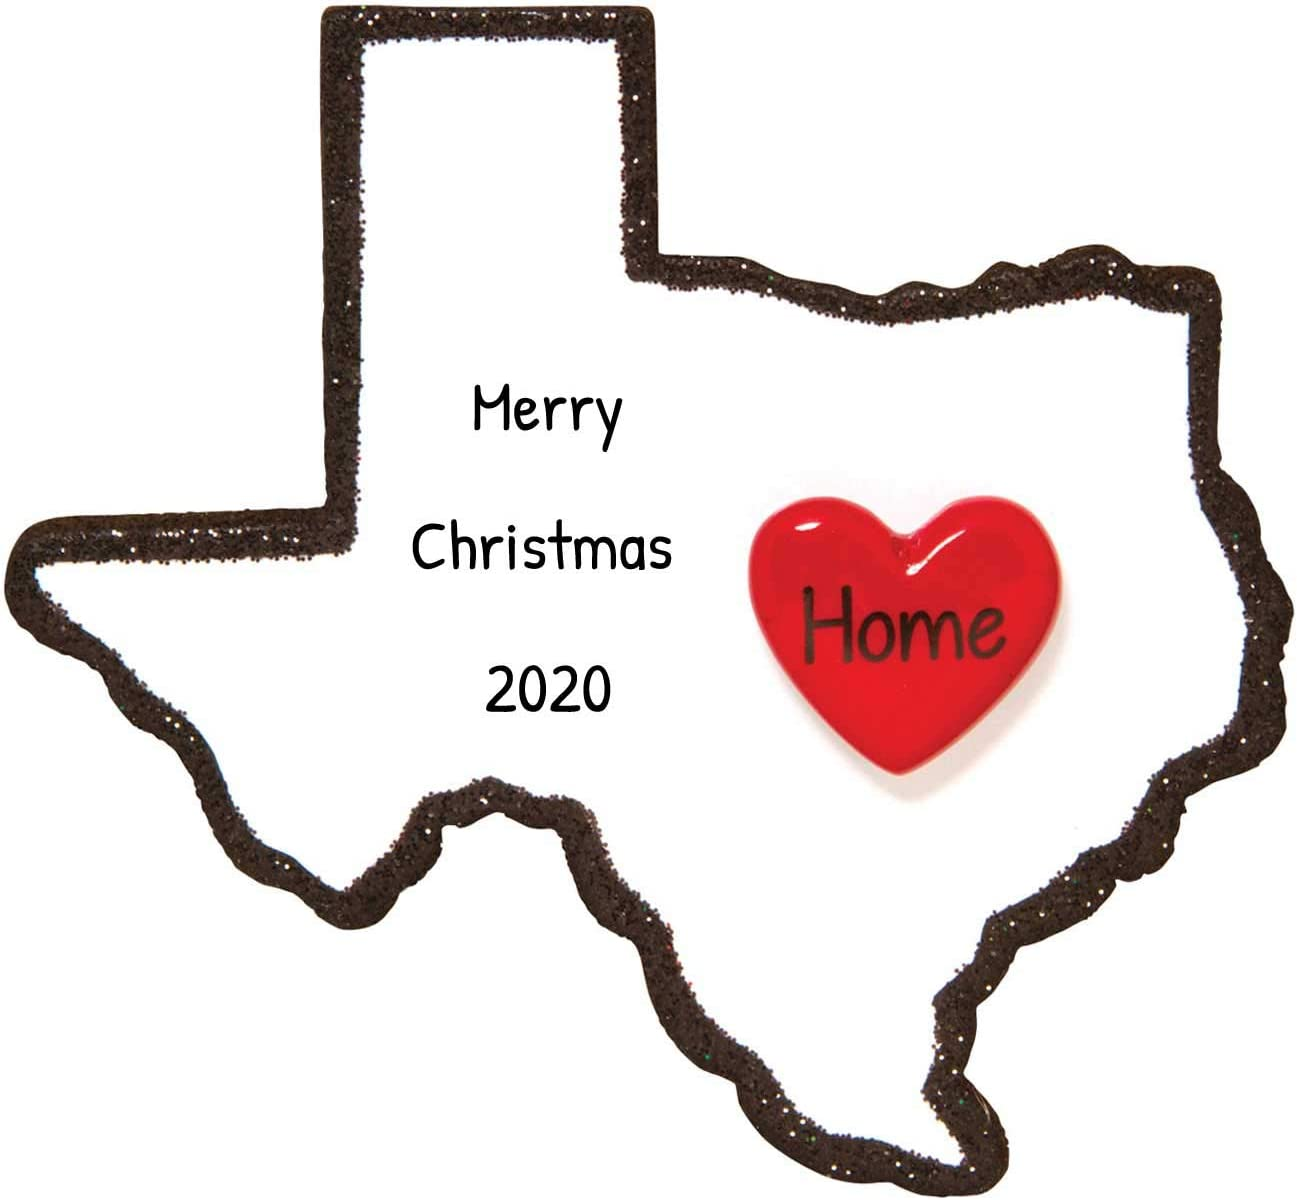 Christmas In Dallas 2020 Free Amazon.com: Personalized Texas Christmas Tree Ornament 2020